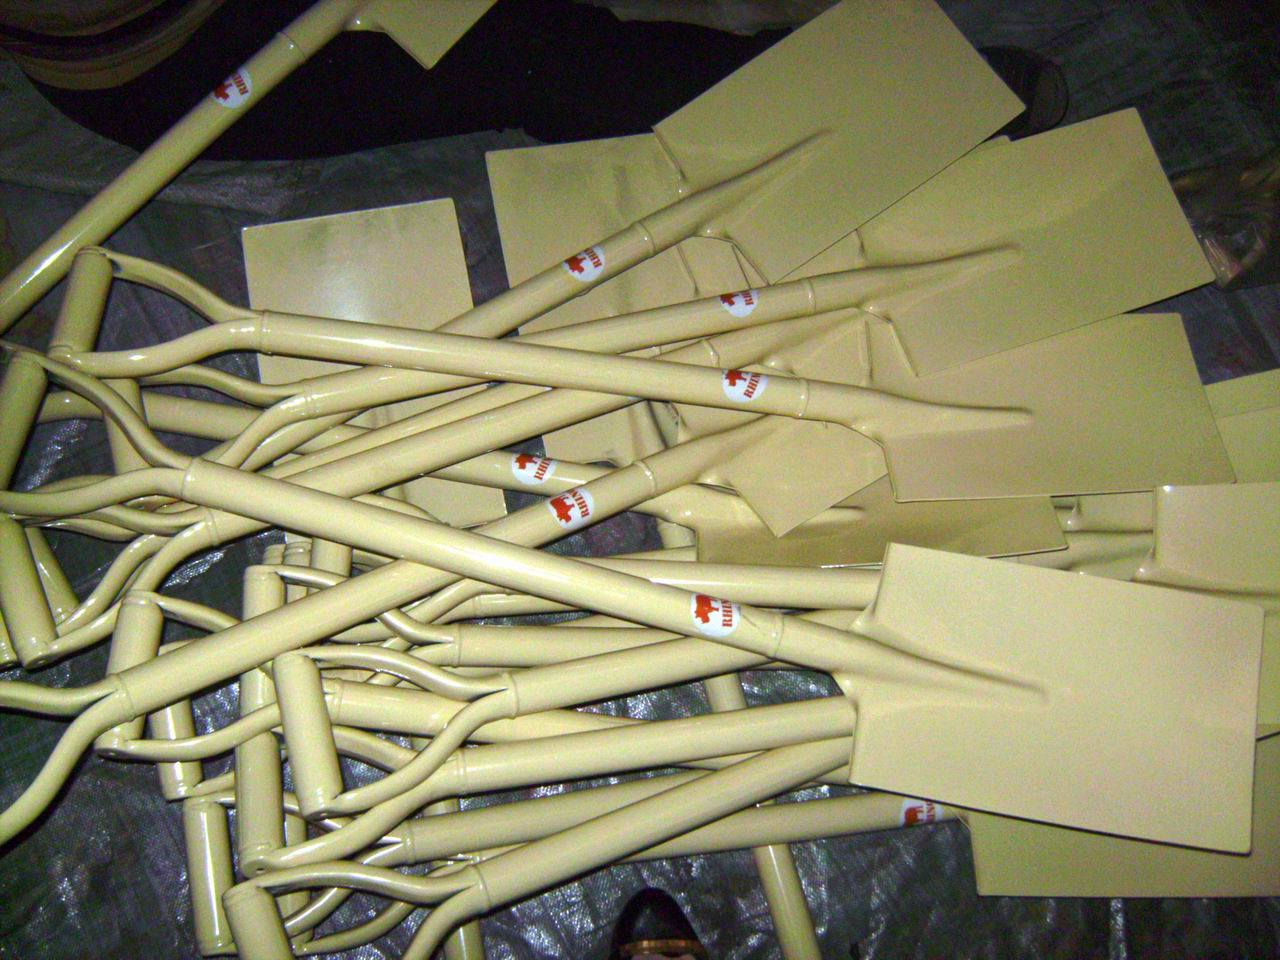 White Painted Garden Steel Spades Shovels for Africa Market